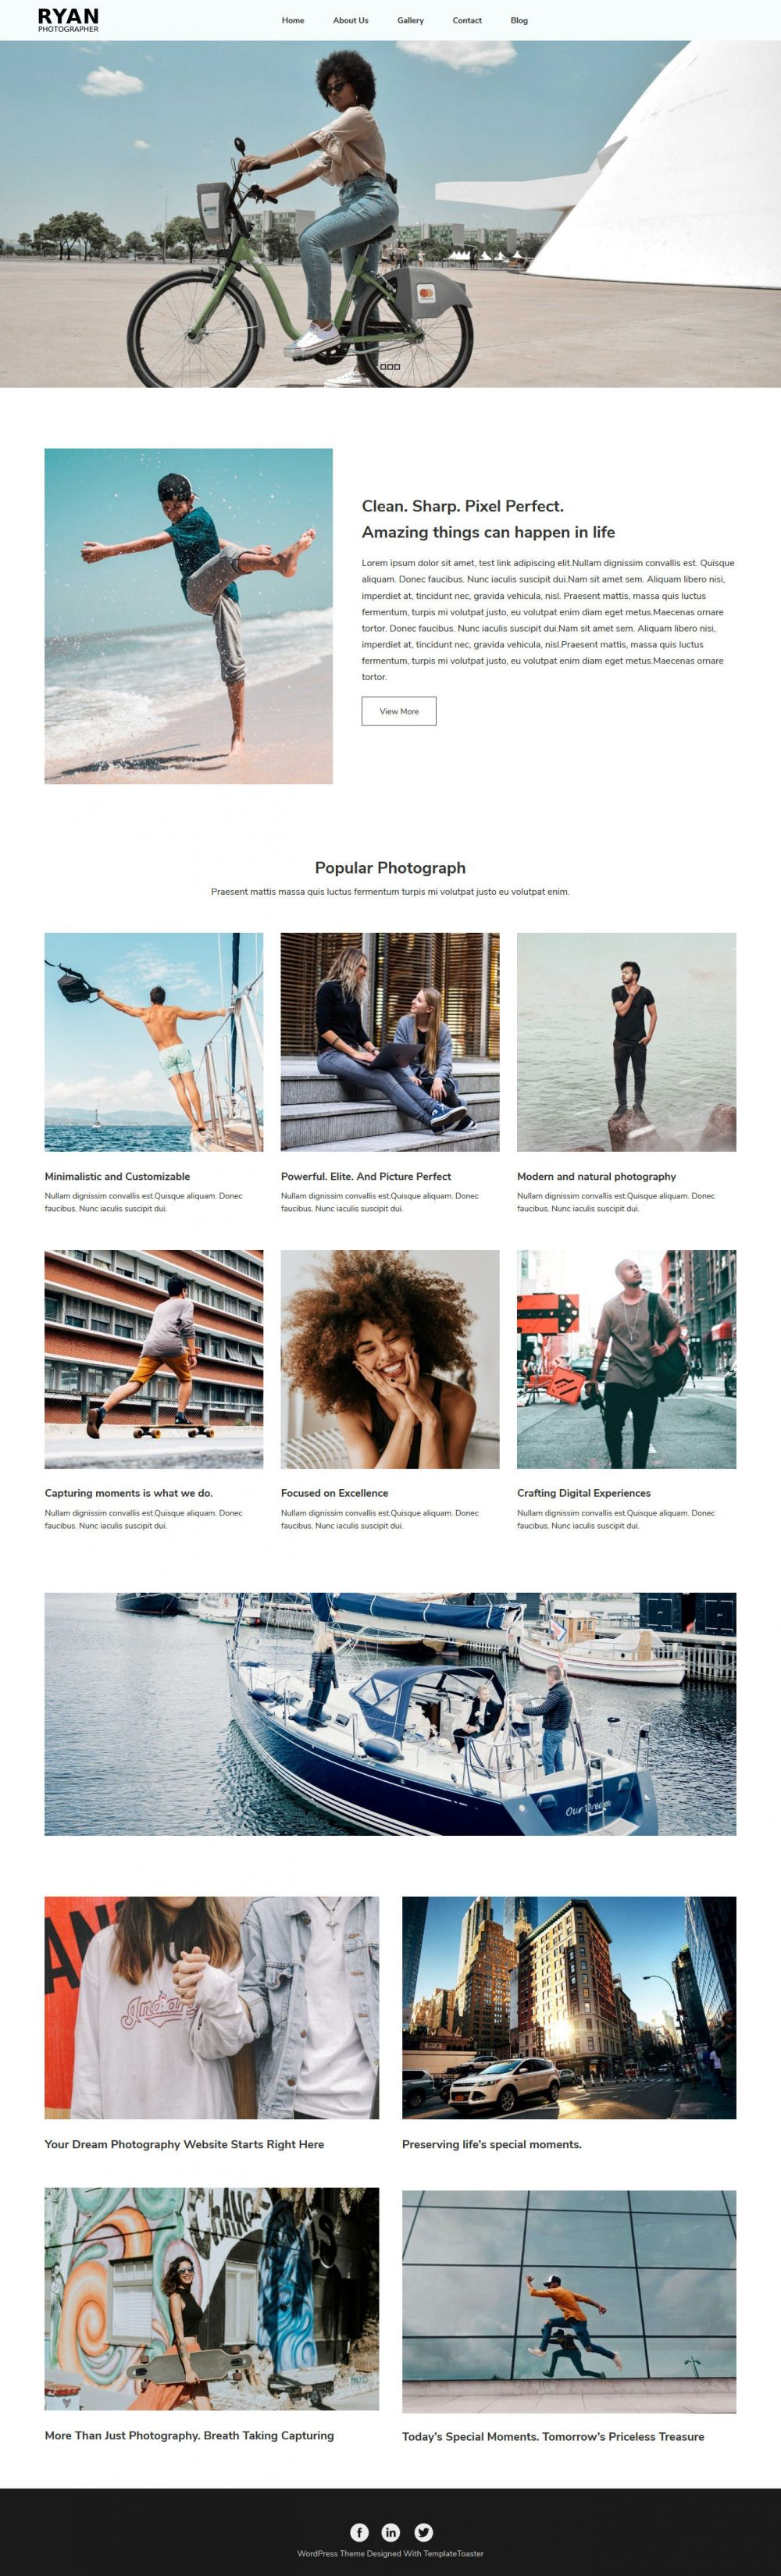 Ryan Photographer Joomla Template